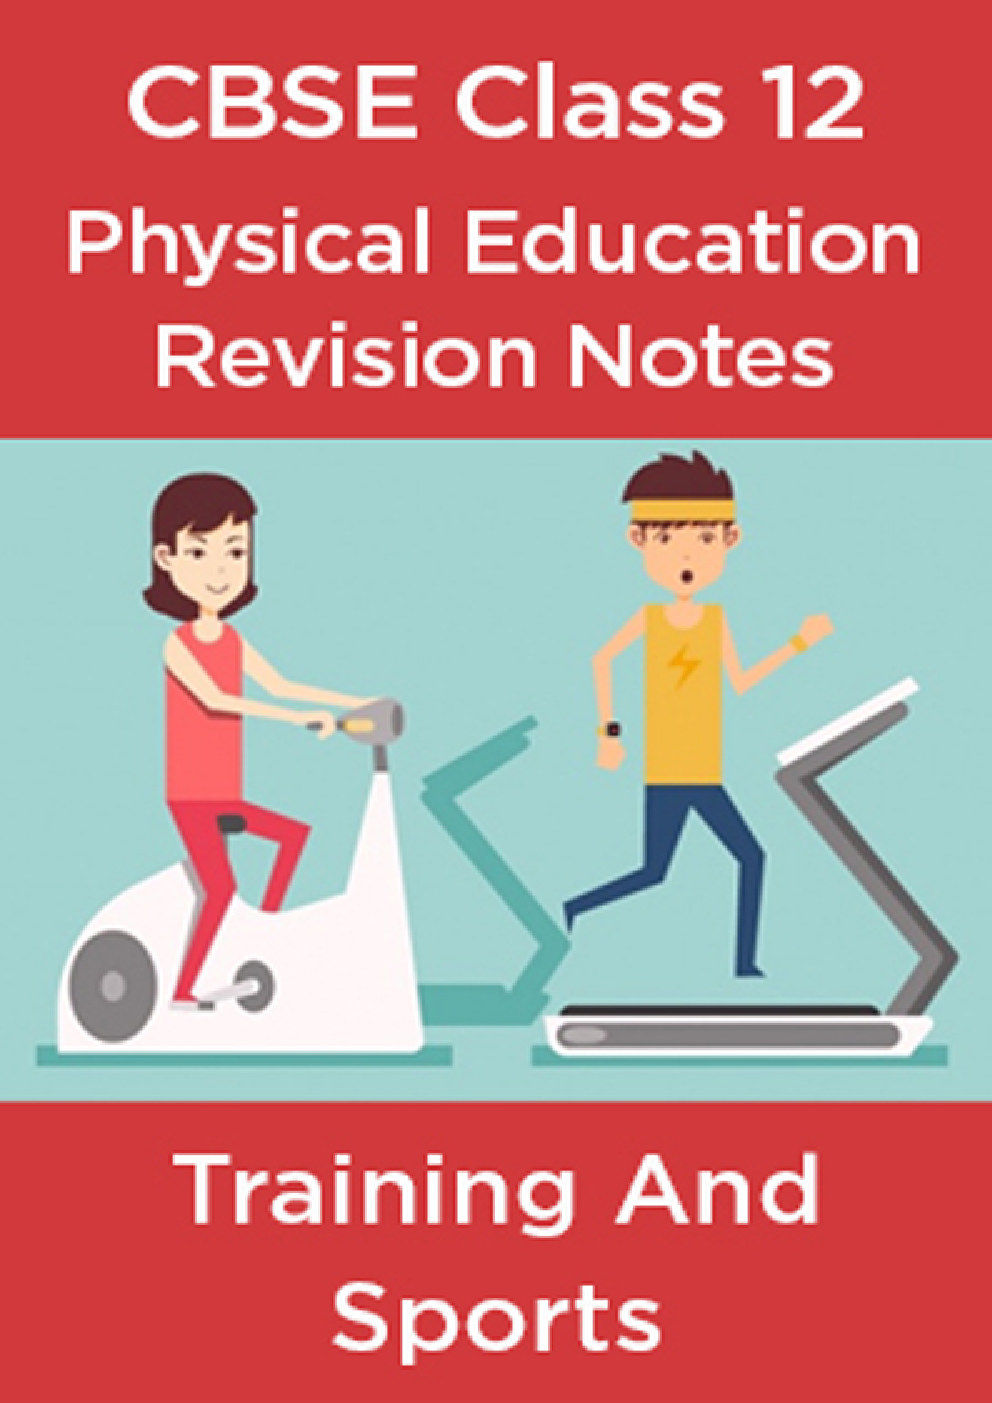 CBSE Class 12 Physical Education Revision Notes Training And Sports - Page 1